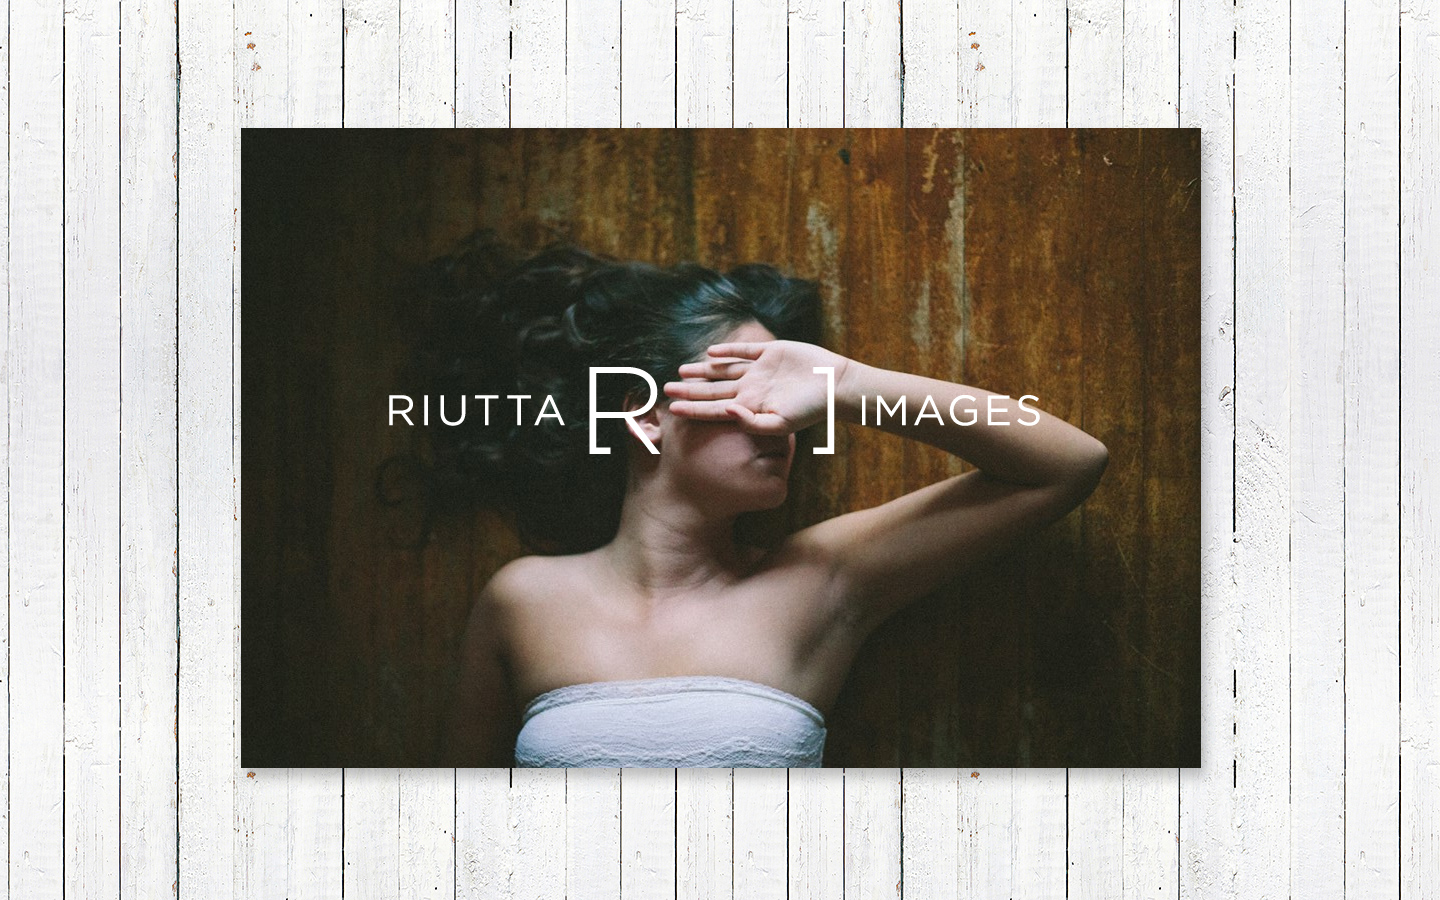 Riutta_images_application19